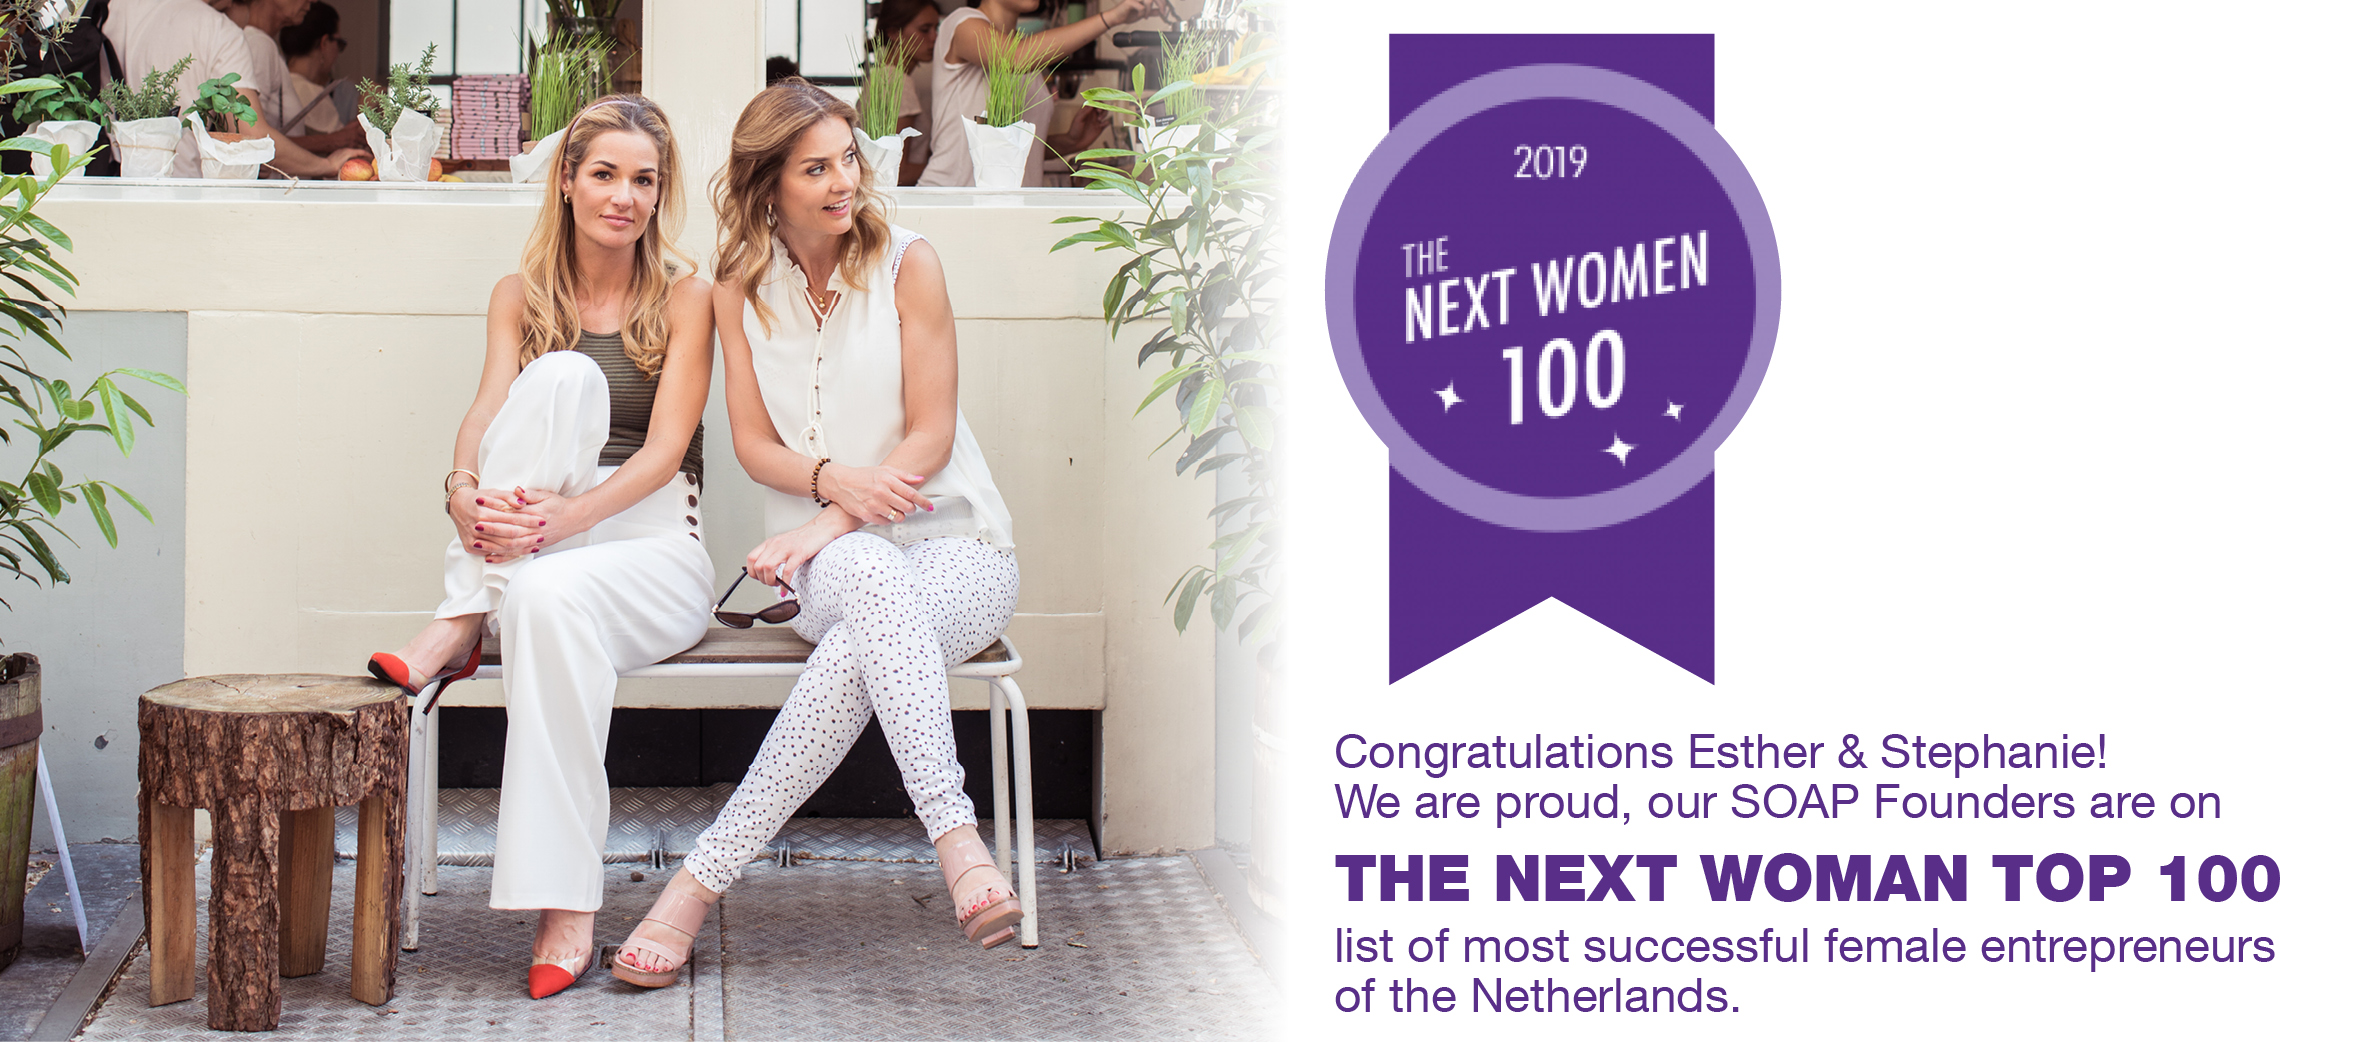 NEXT WOMAN TOP 100